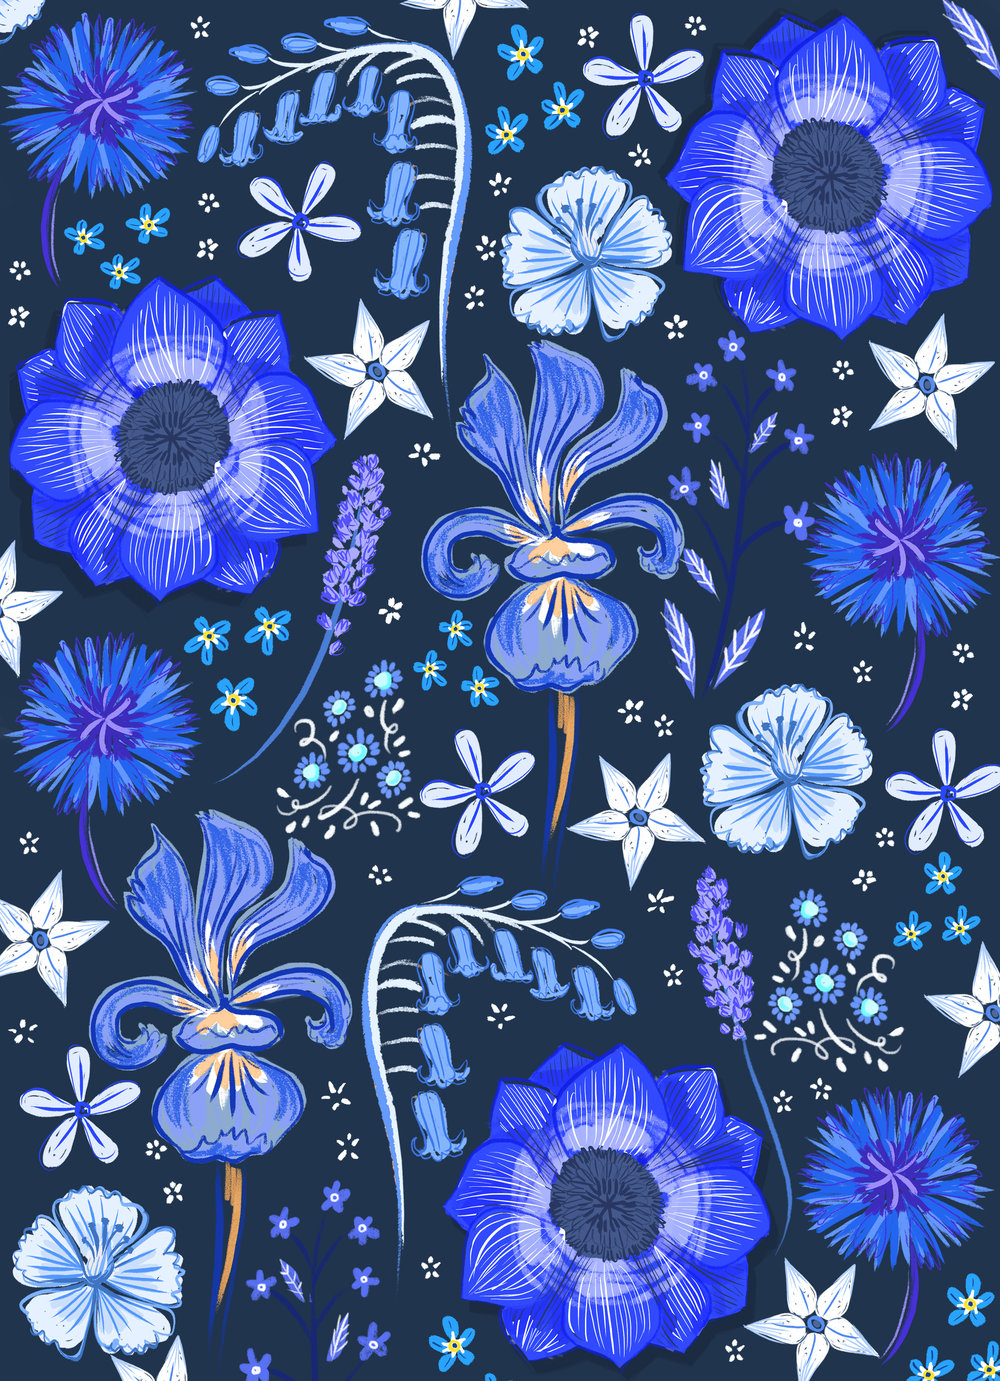 Blue Flower Pattern2.jpg